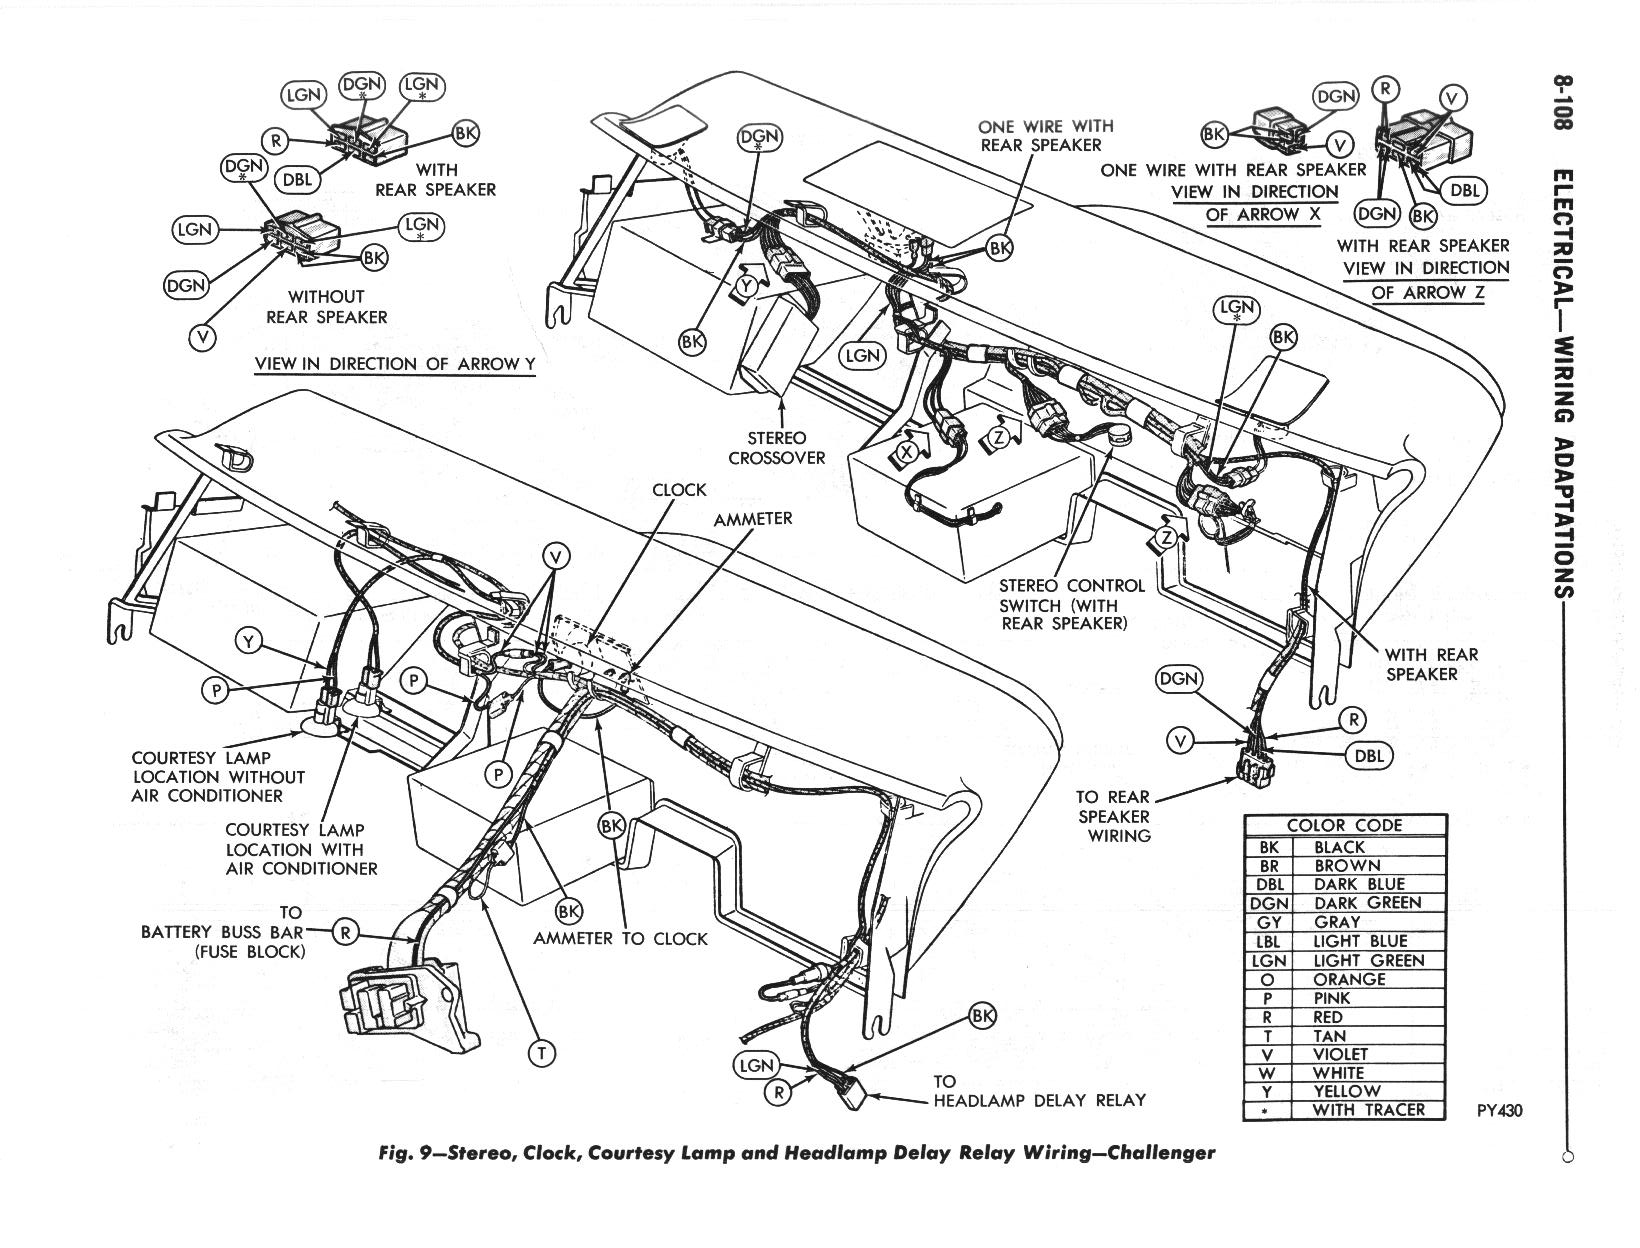 1784_0_GRP8_108 1970 challenger wiring diagrams \u2022 the dodge challenger message board challenger wiring diagram at alyssarenee.co